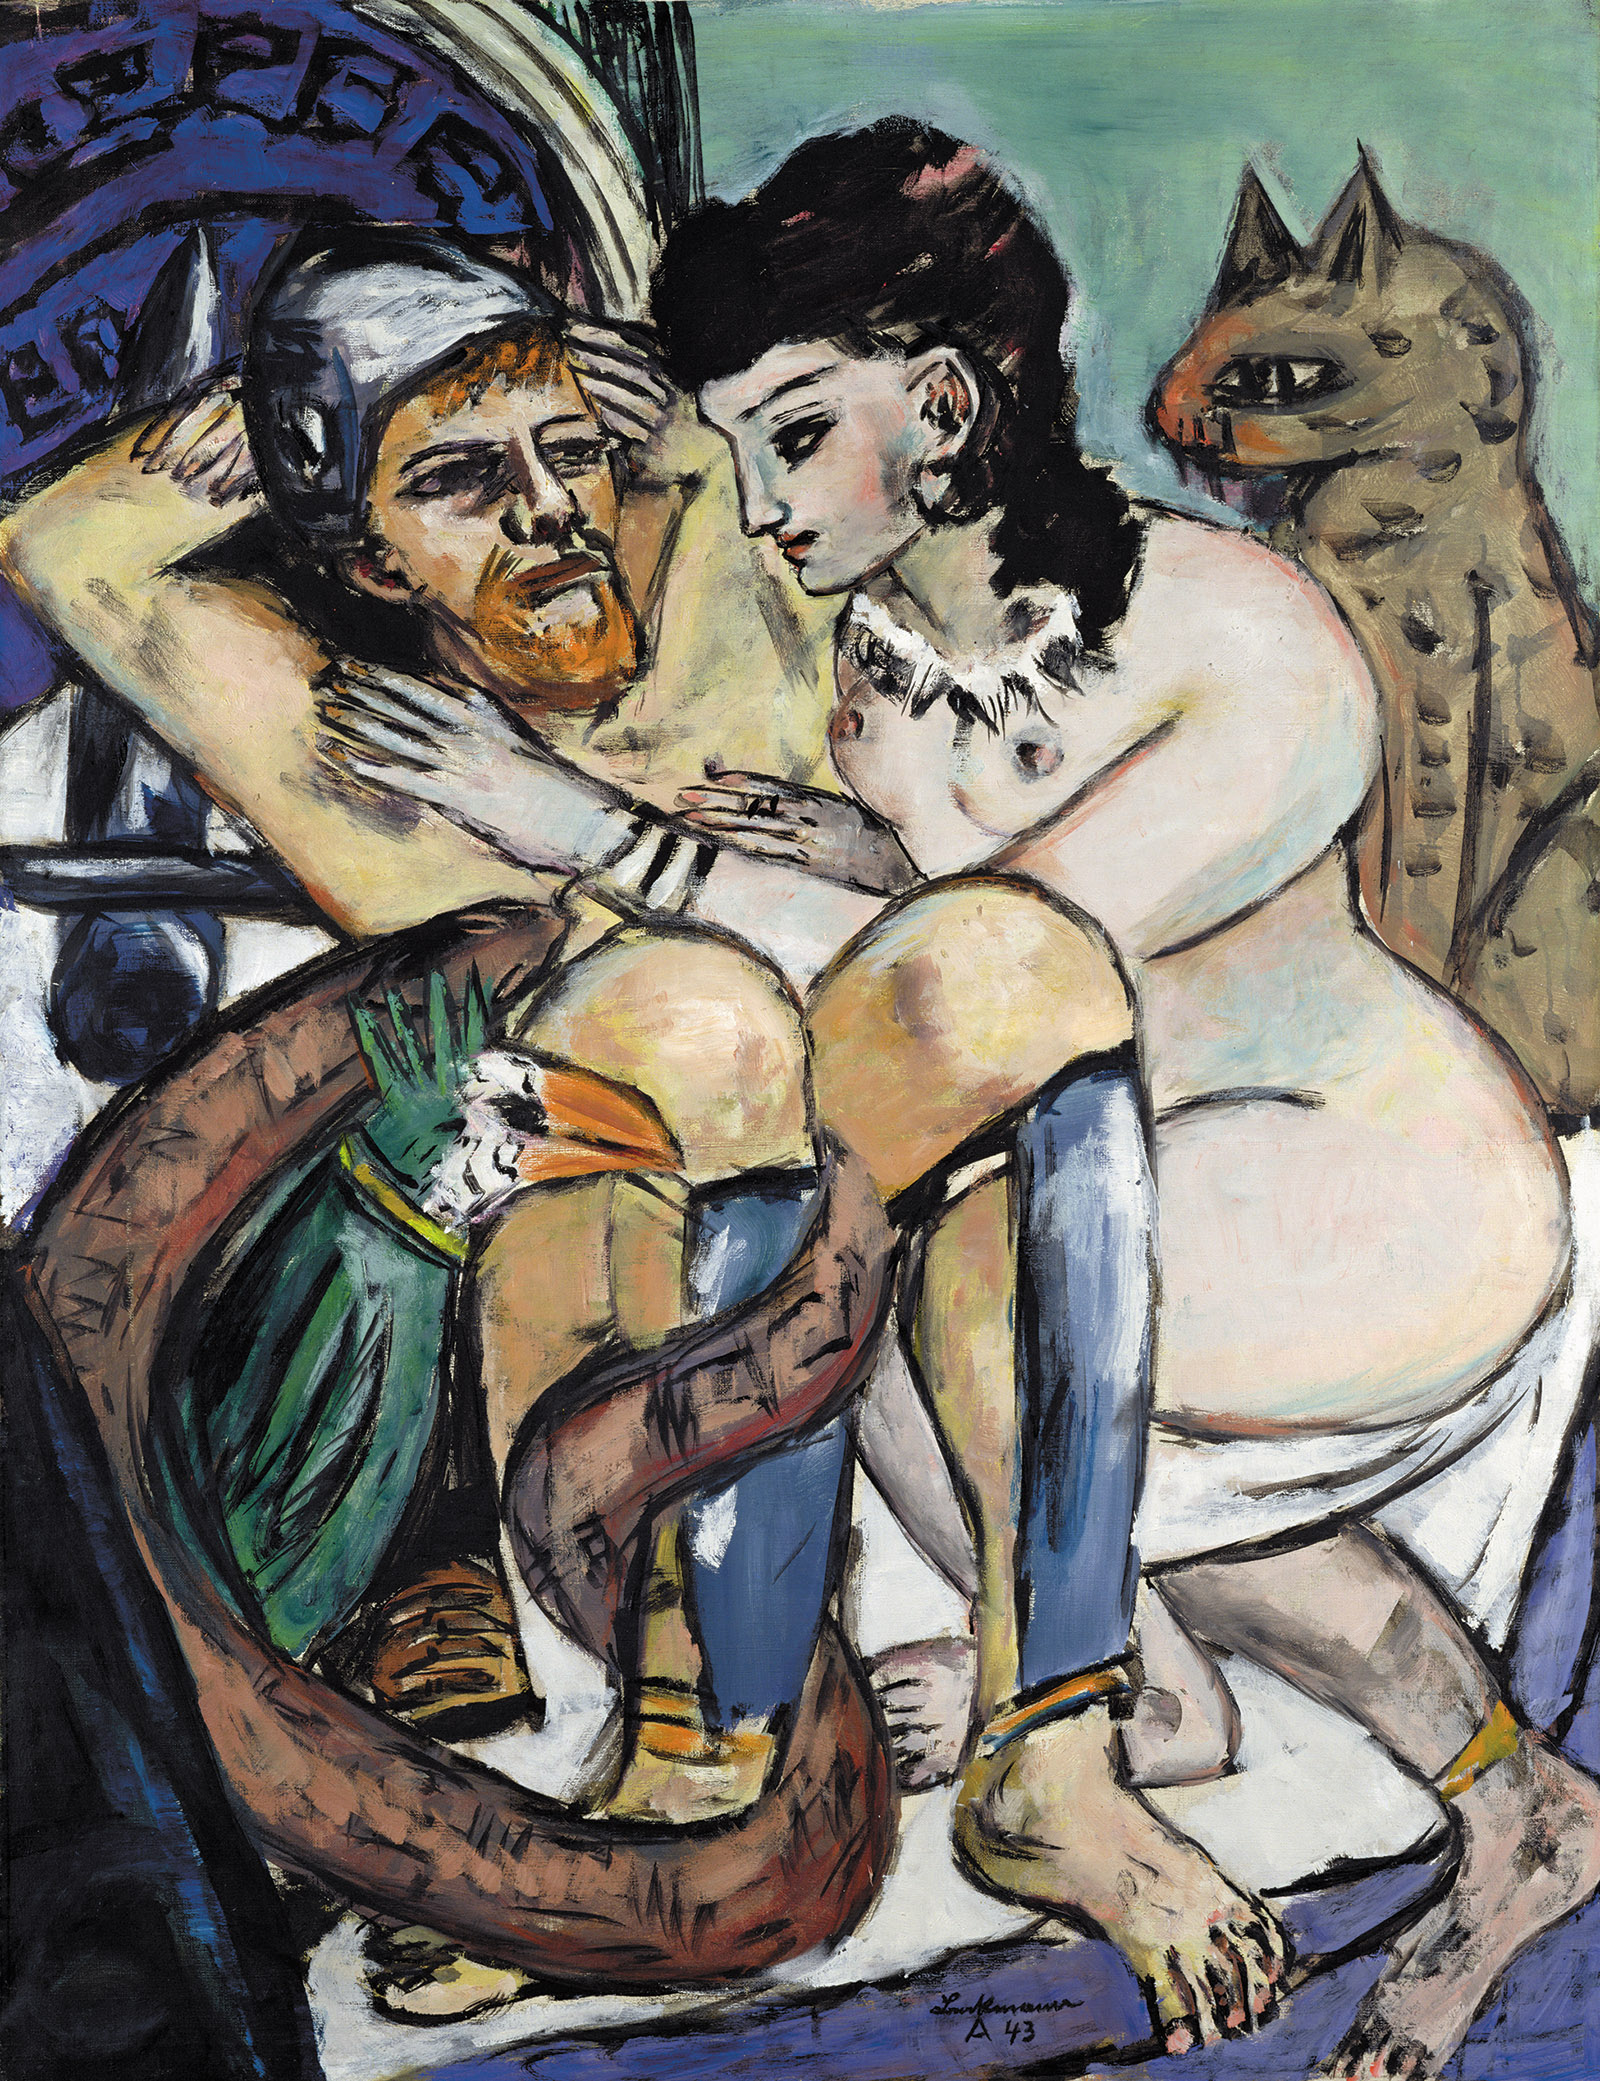 Odysseus and Calypso; painting by Max Beckmann